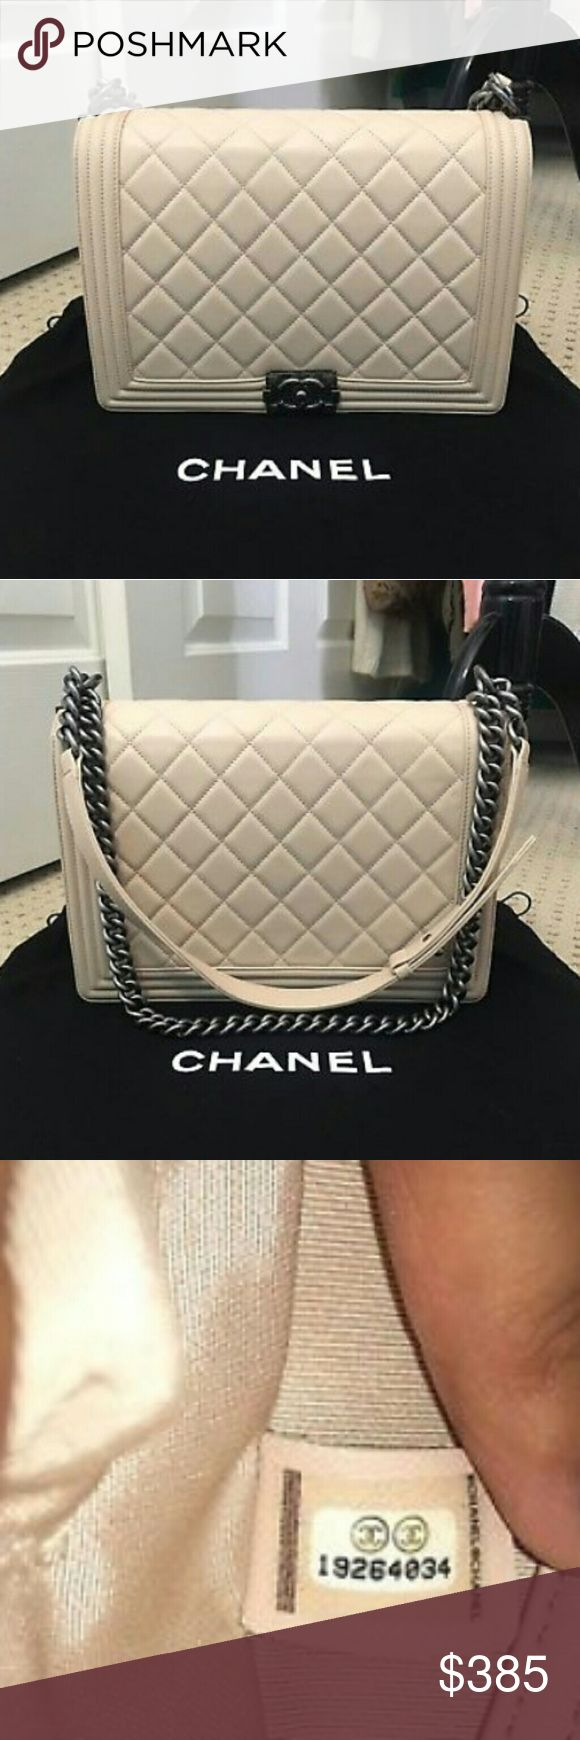 Chanel Classic Leather Lambskin Le Boy Bag Authentic. Comes with dust bag, authentication card and box as shown. There are wear on the corners. Light stain on bottom as shown. Very good condition. Only wore 4x.   Final sale. No returns or exchanges CHANEL Bags Shoulder Bags